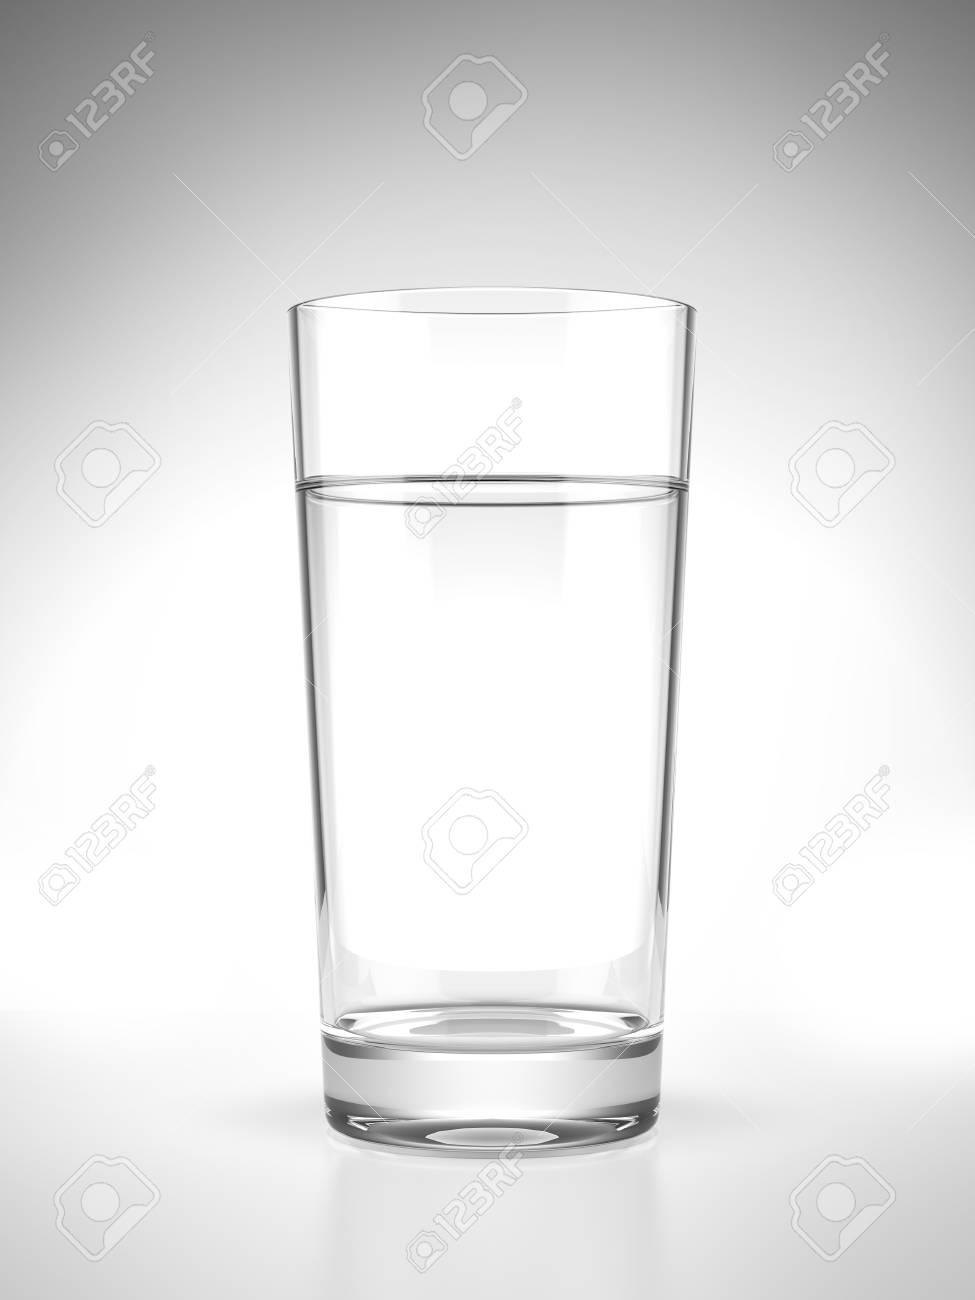 Glass of water  isolated on a white background Stock Photo - 22401679